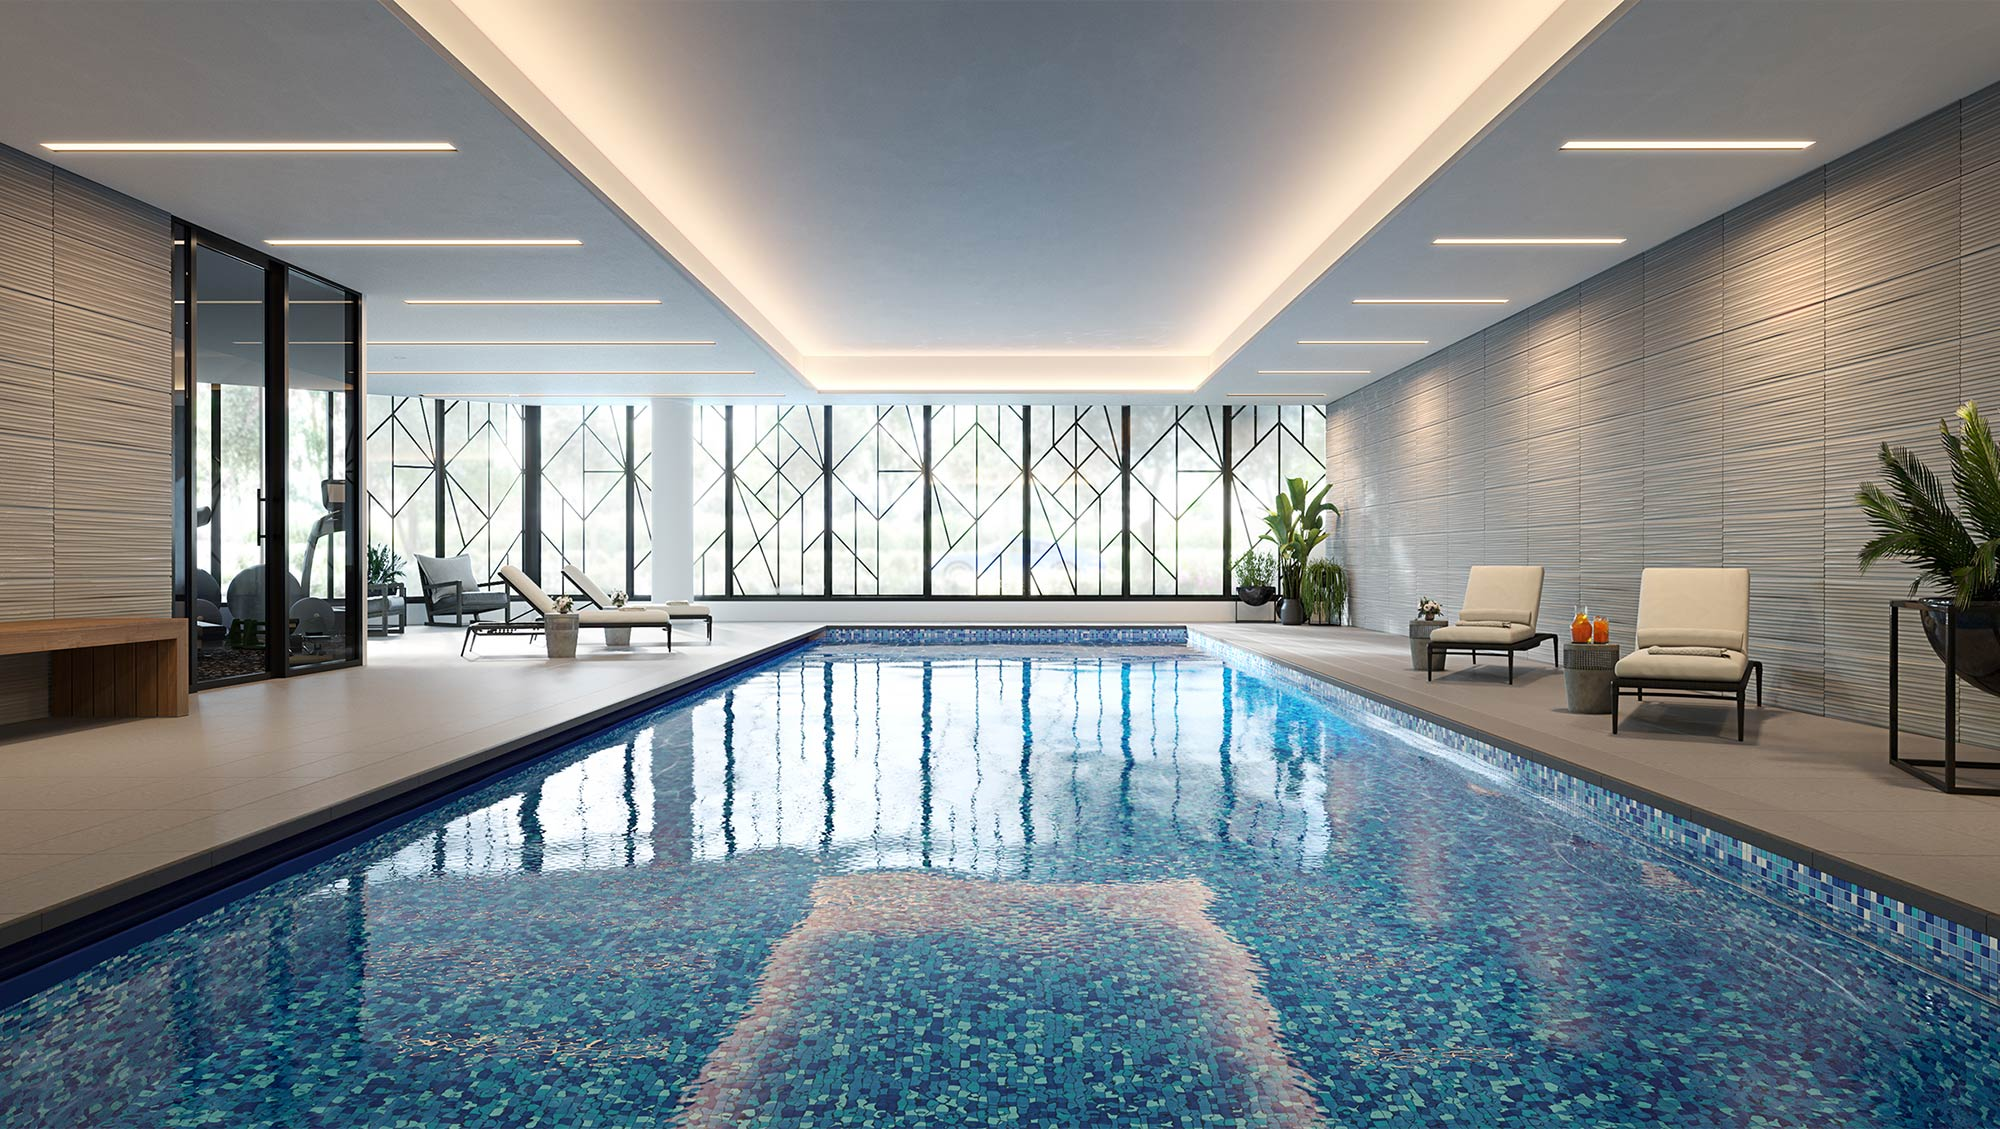 State of the art indoor swimming pool at The Orchards Templestowe